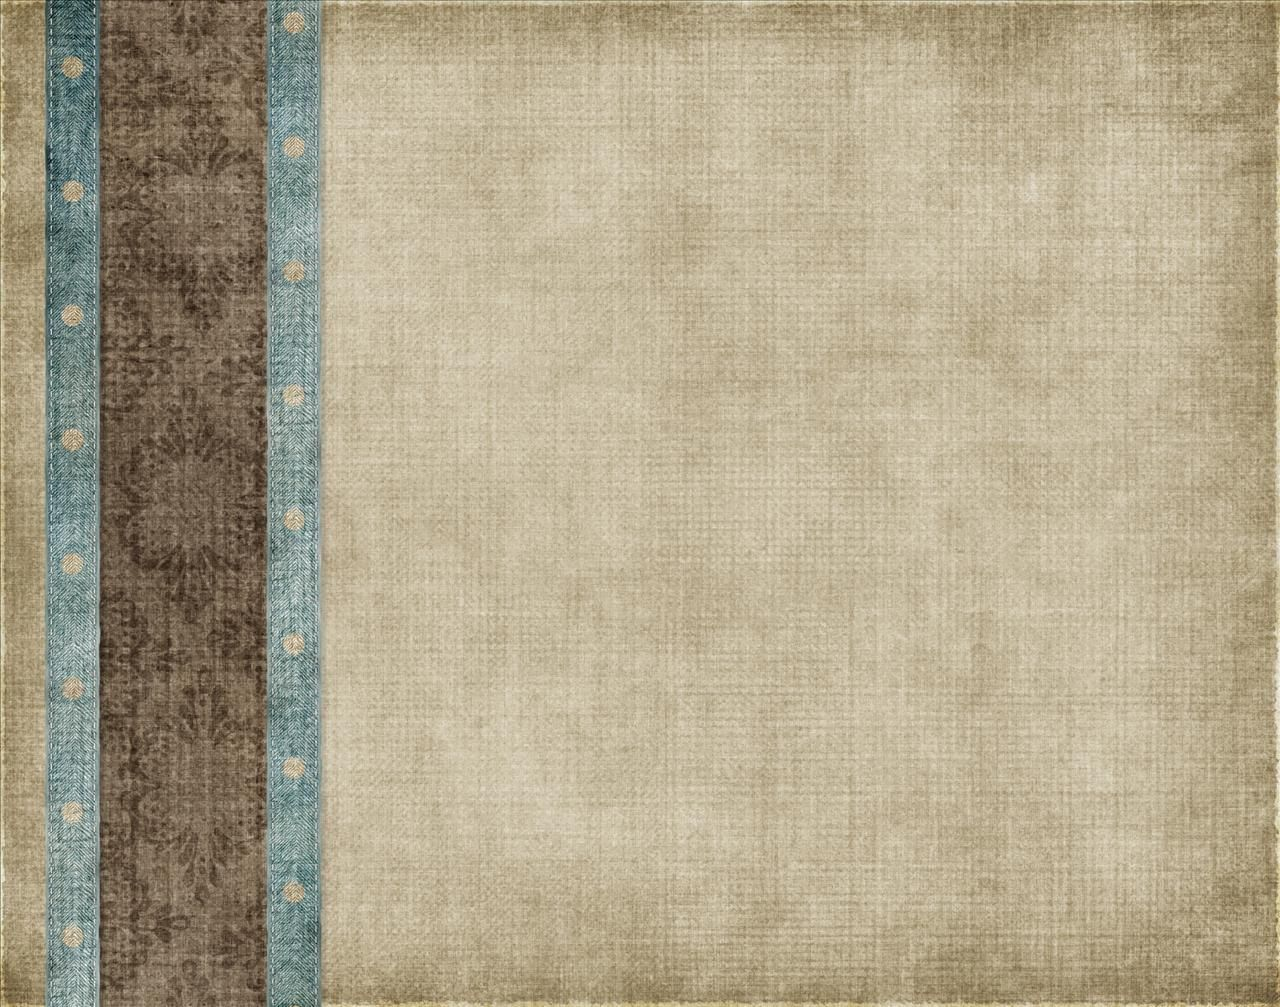 Amelie By Tracy Collins Vintage With Blue Brown And Little Brown Background Vintage Aesthetic Pastel Wallpaper Vintage Scrapbook